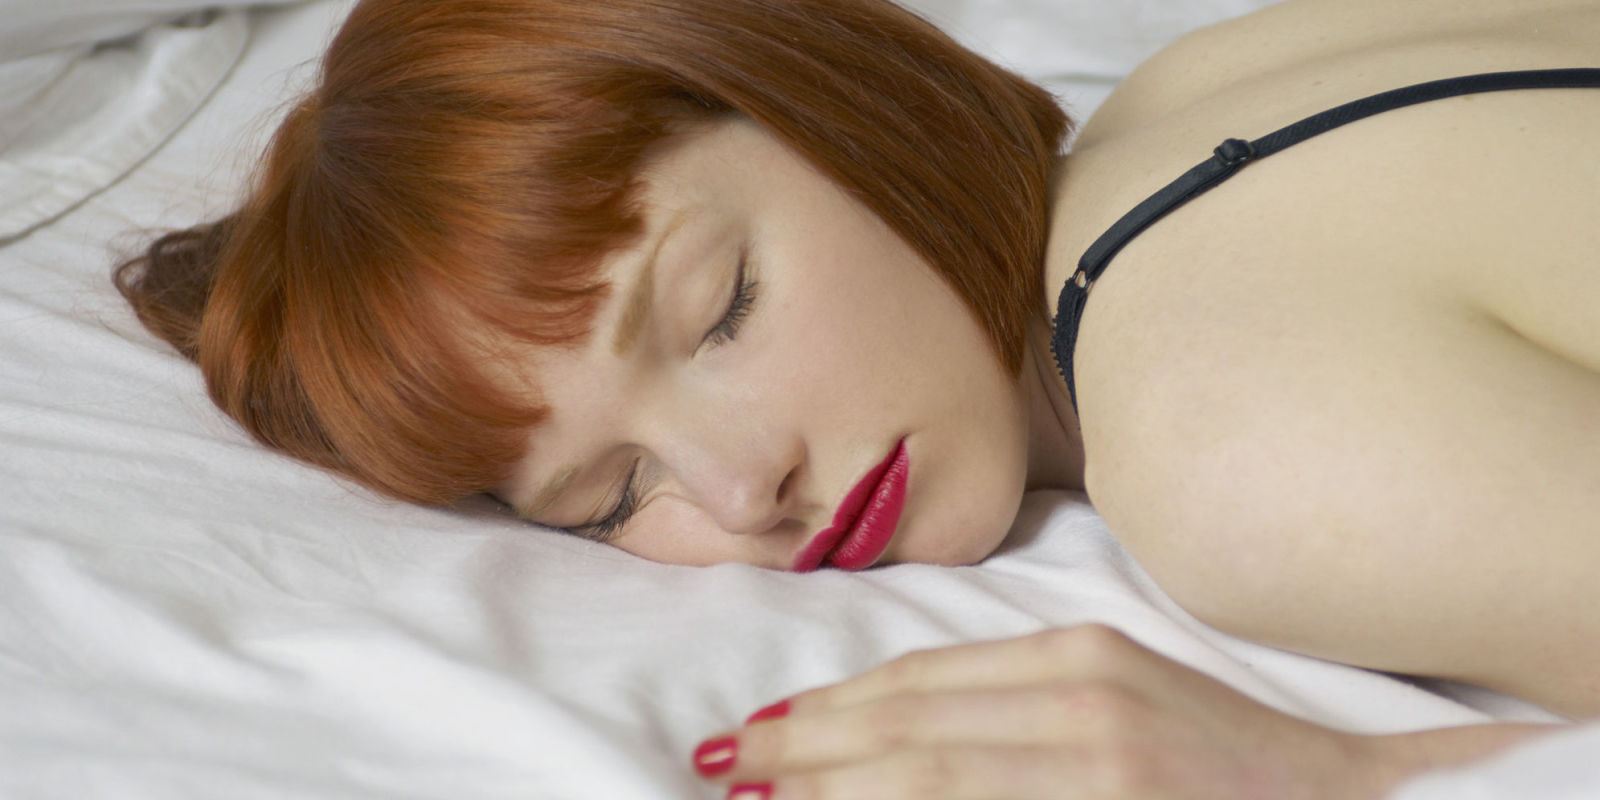 6 Risks Of Sleeping In Makeup Why You Should Never Sleep In Makeup